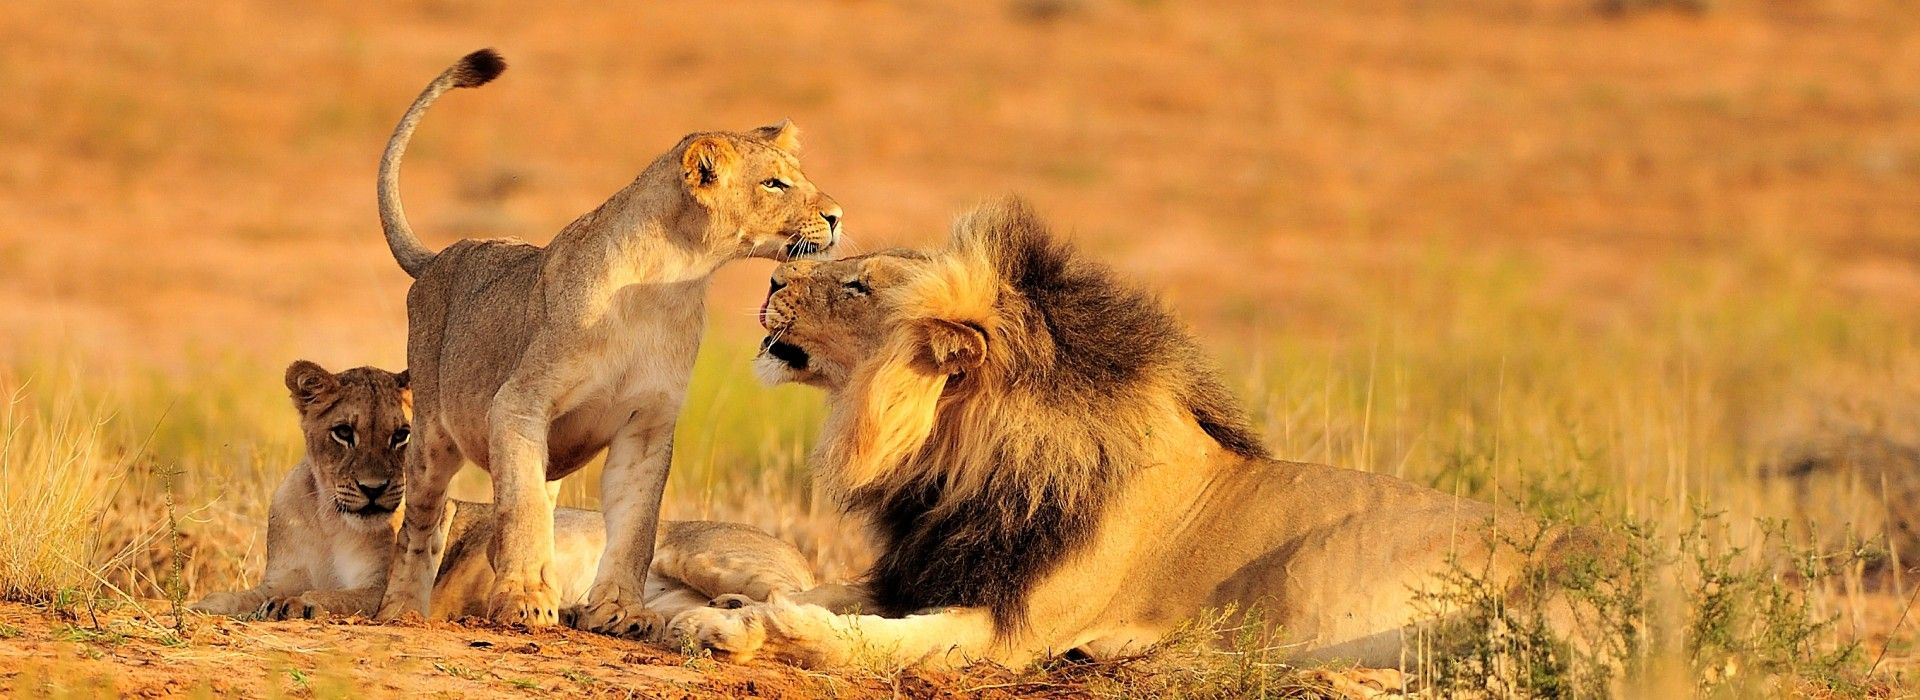 Wildlife safaris and game drives Tours in South Africa